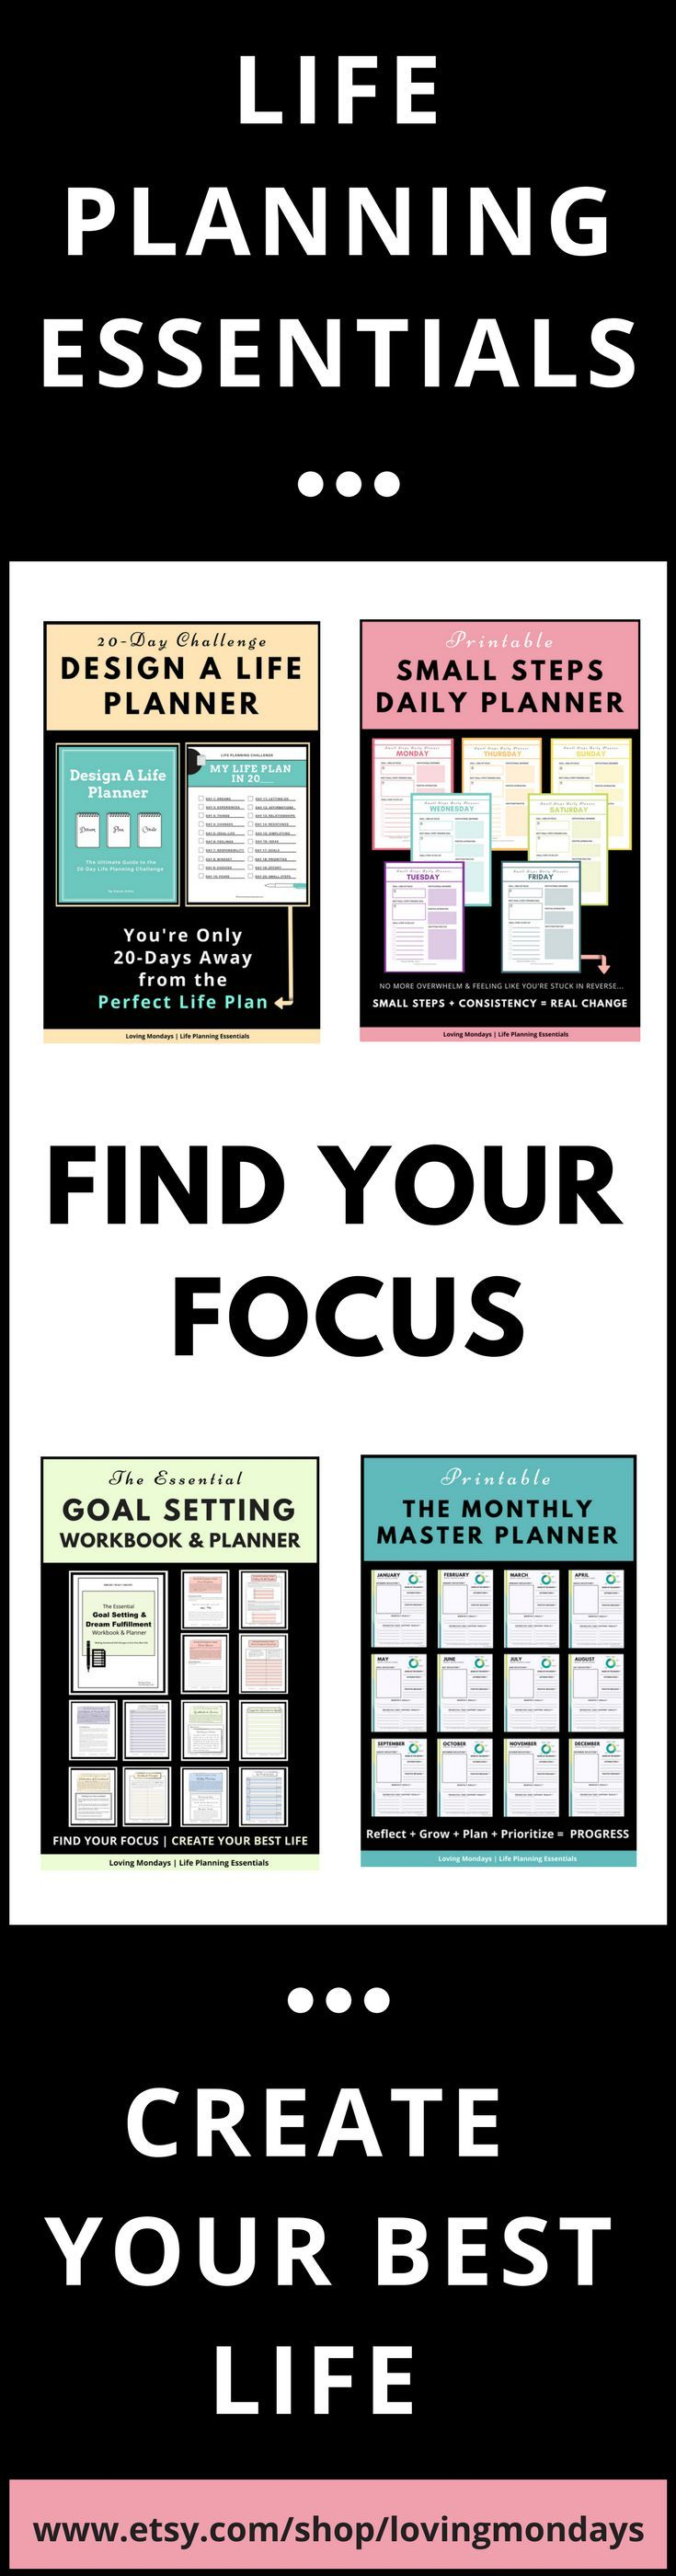 Life planning essentials to help you find your focus and create your best life. Life changing printables, planners and workbooks. #lifeplanning #lifeplanner #goalsetting #plannerlove #planner #organization #printable #challenges